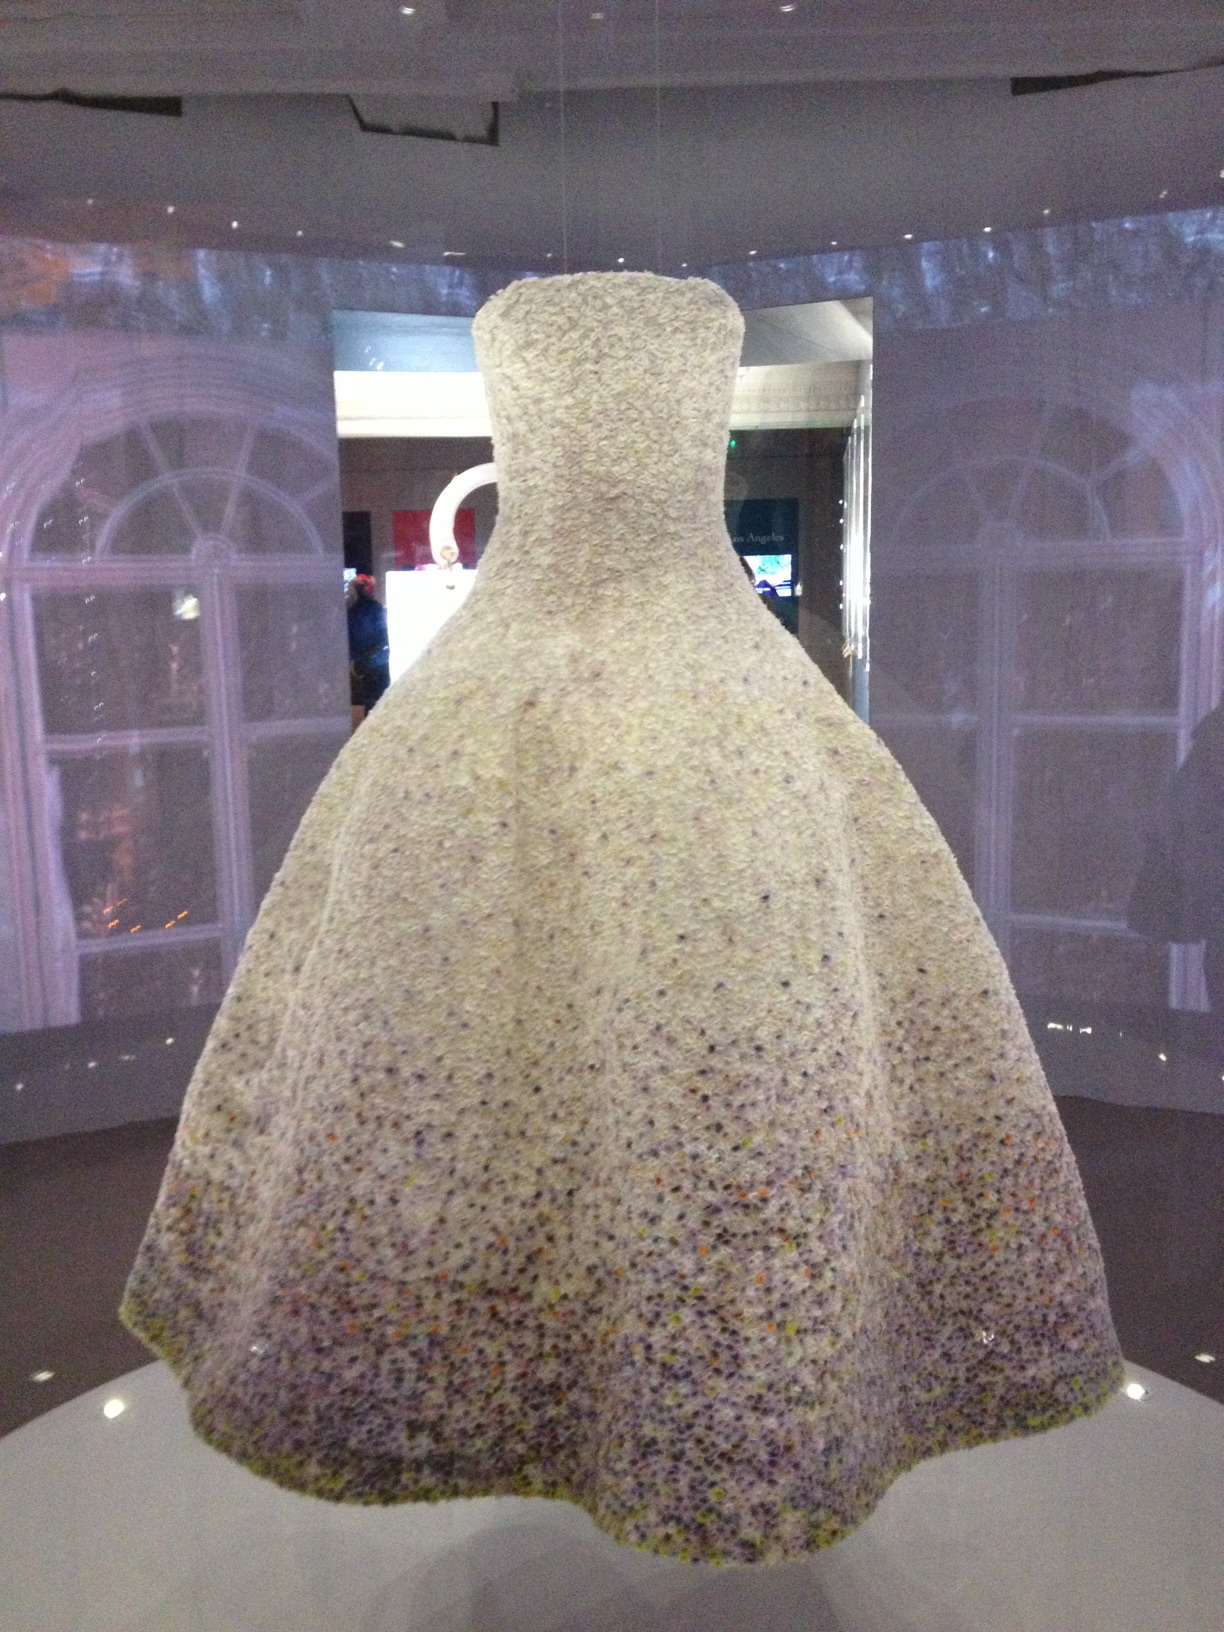 What. A. Dress. Stunning dress created by Dior's current creative director Raf Simons. It's made of thousands of applique, tiny flowers.